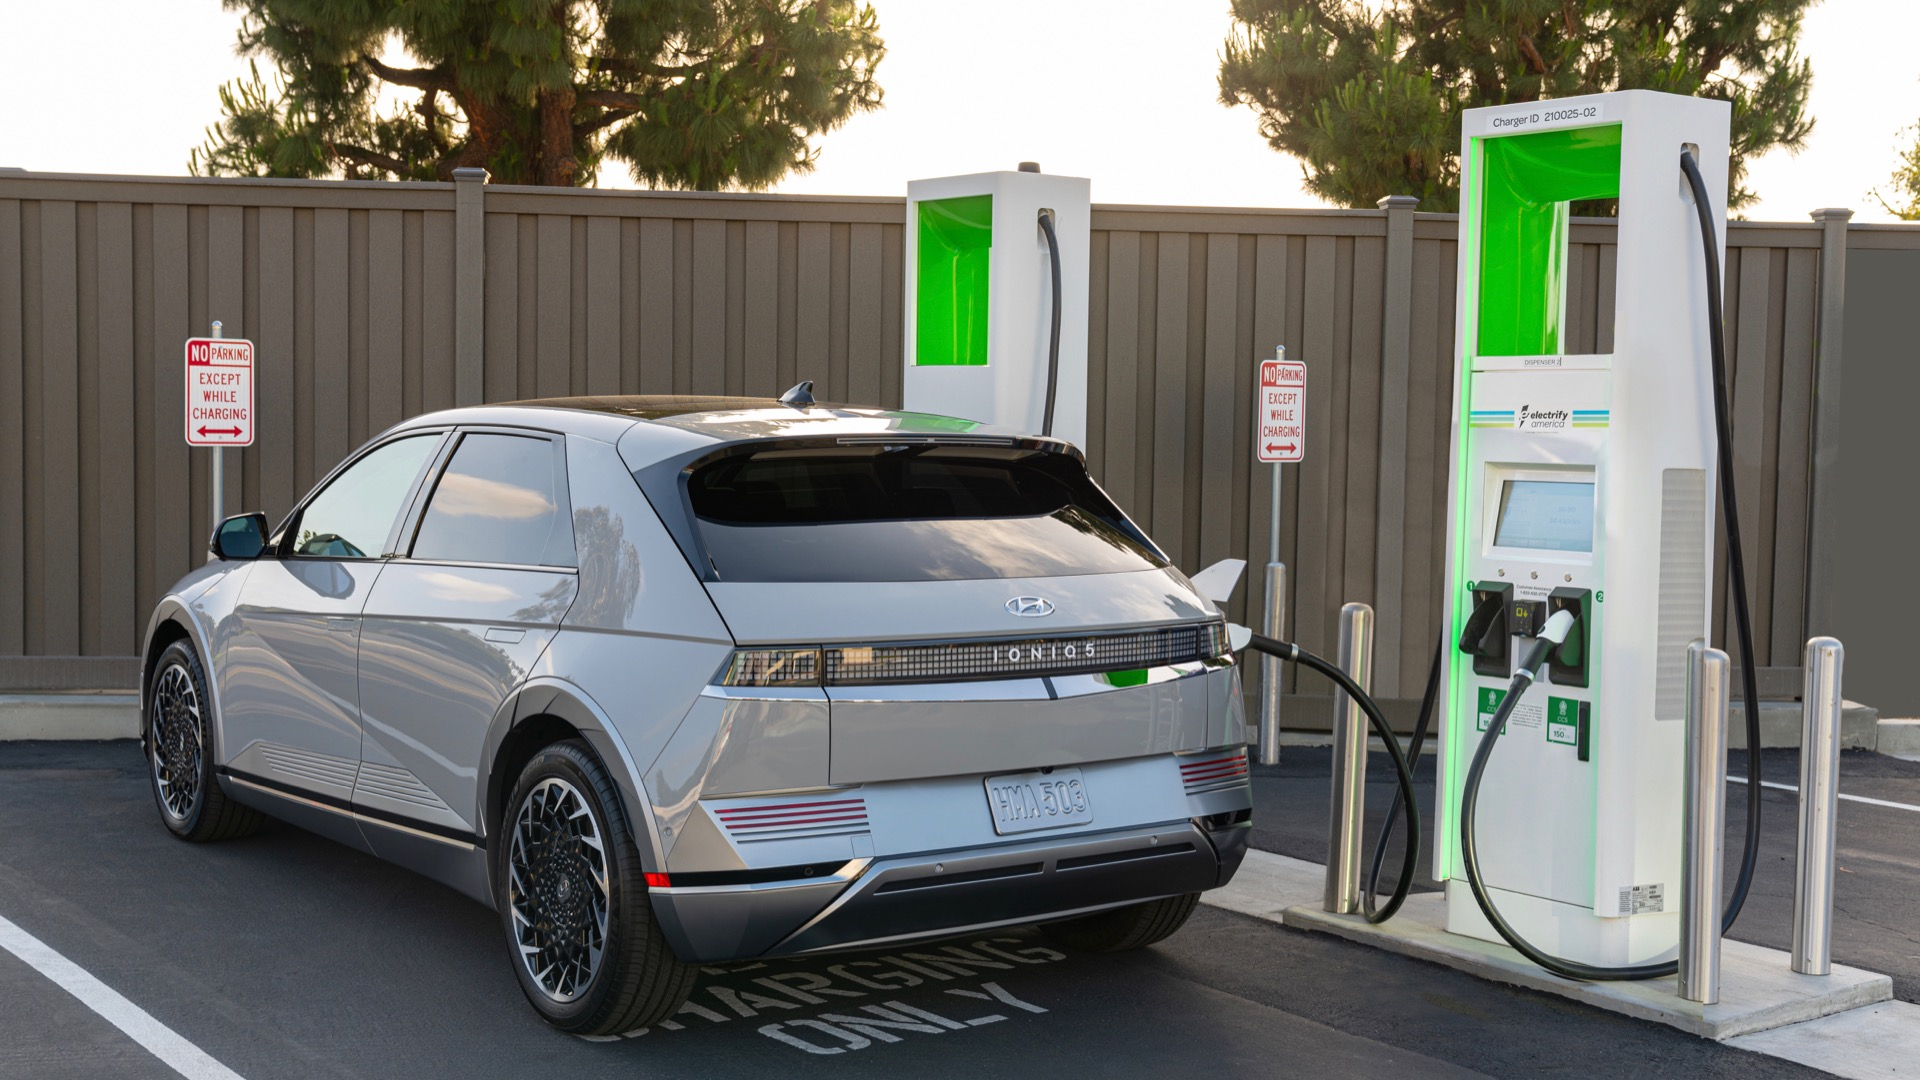 Electrify America connects Yosemite visitors with very fast EV charging